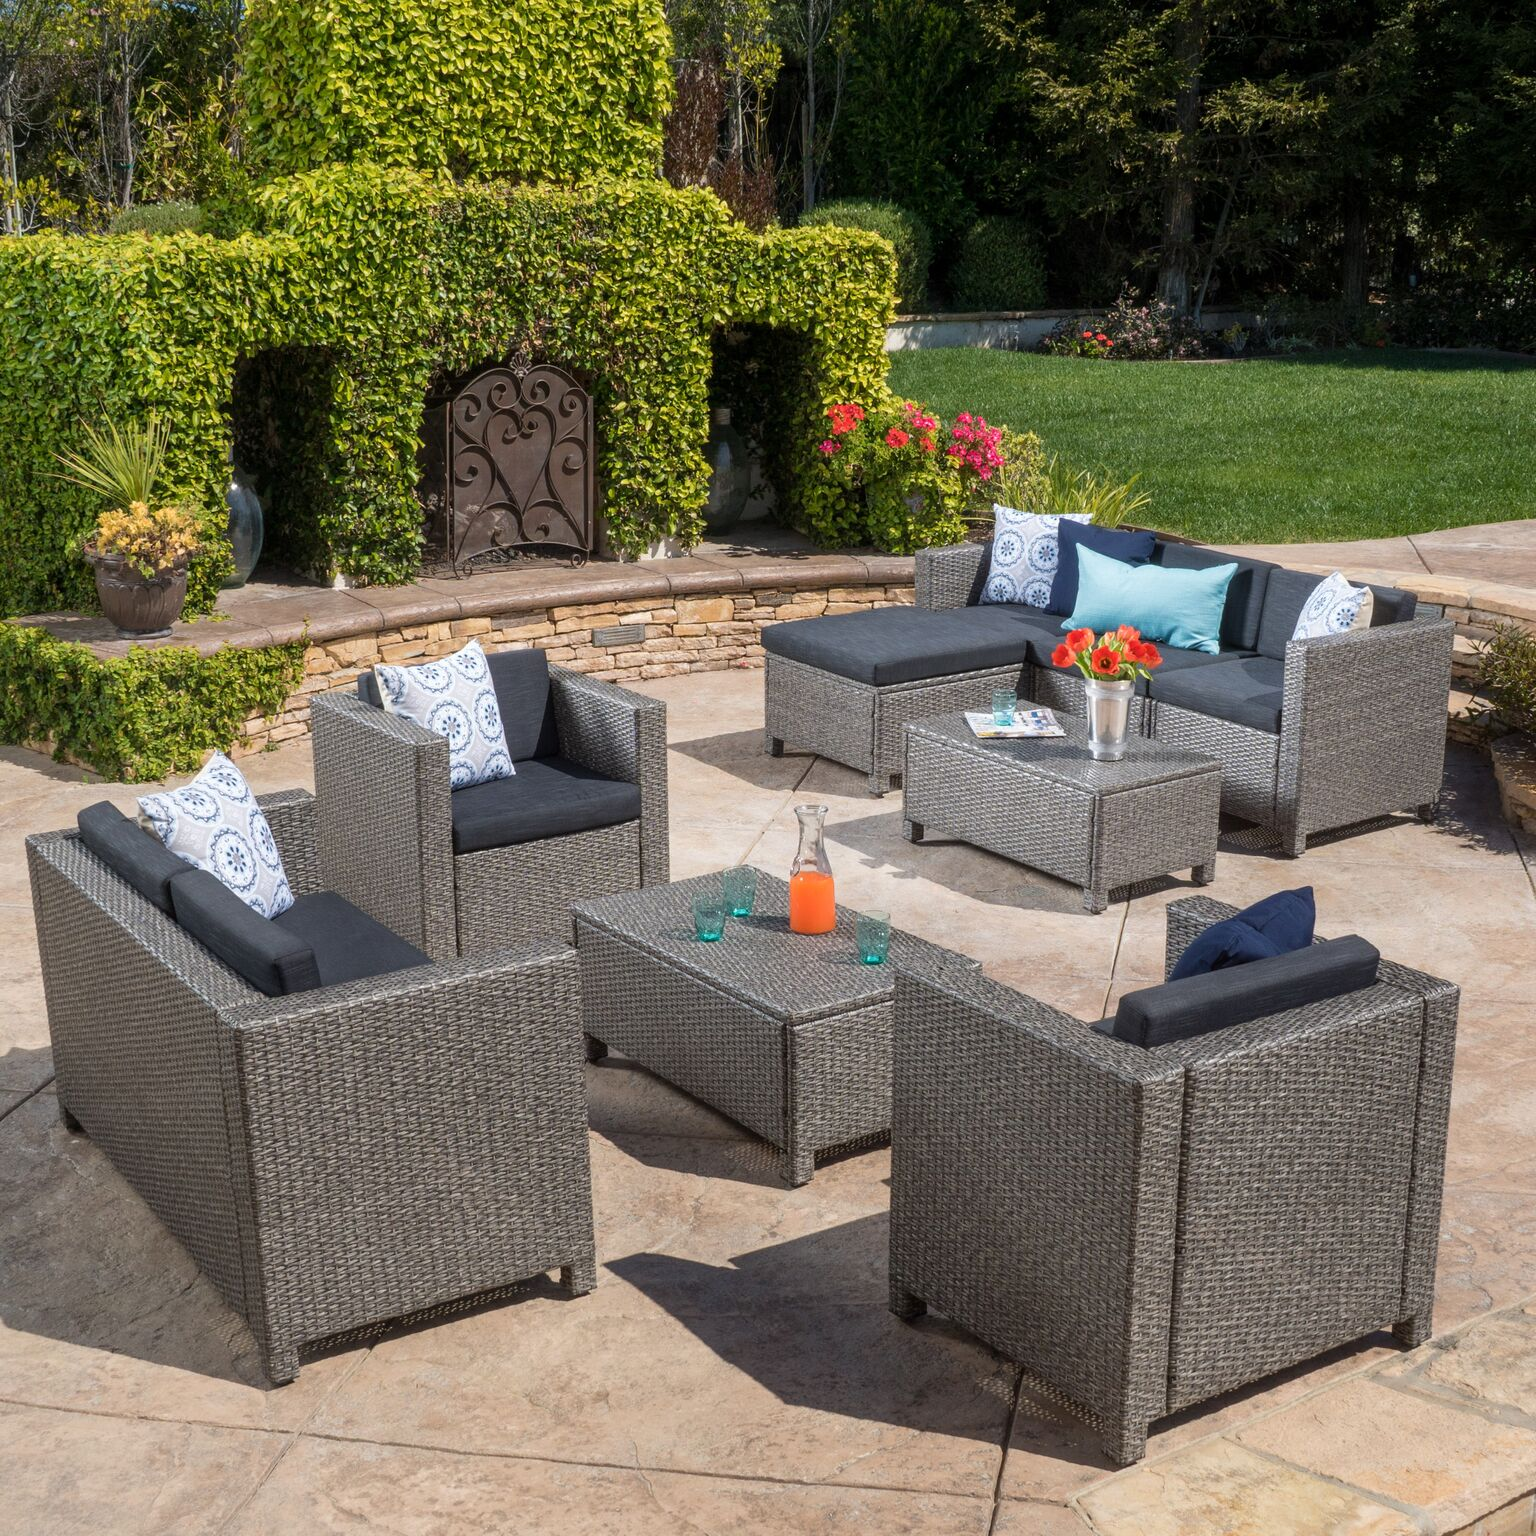 Cascada 9 Piece Outdoor Wicker Chat Set with Cushions, Mixed Black and Dark Gray